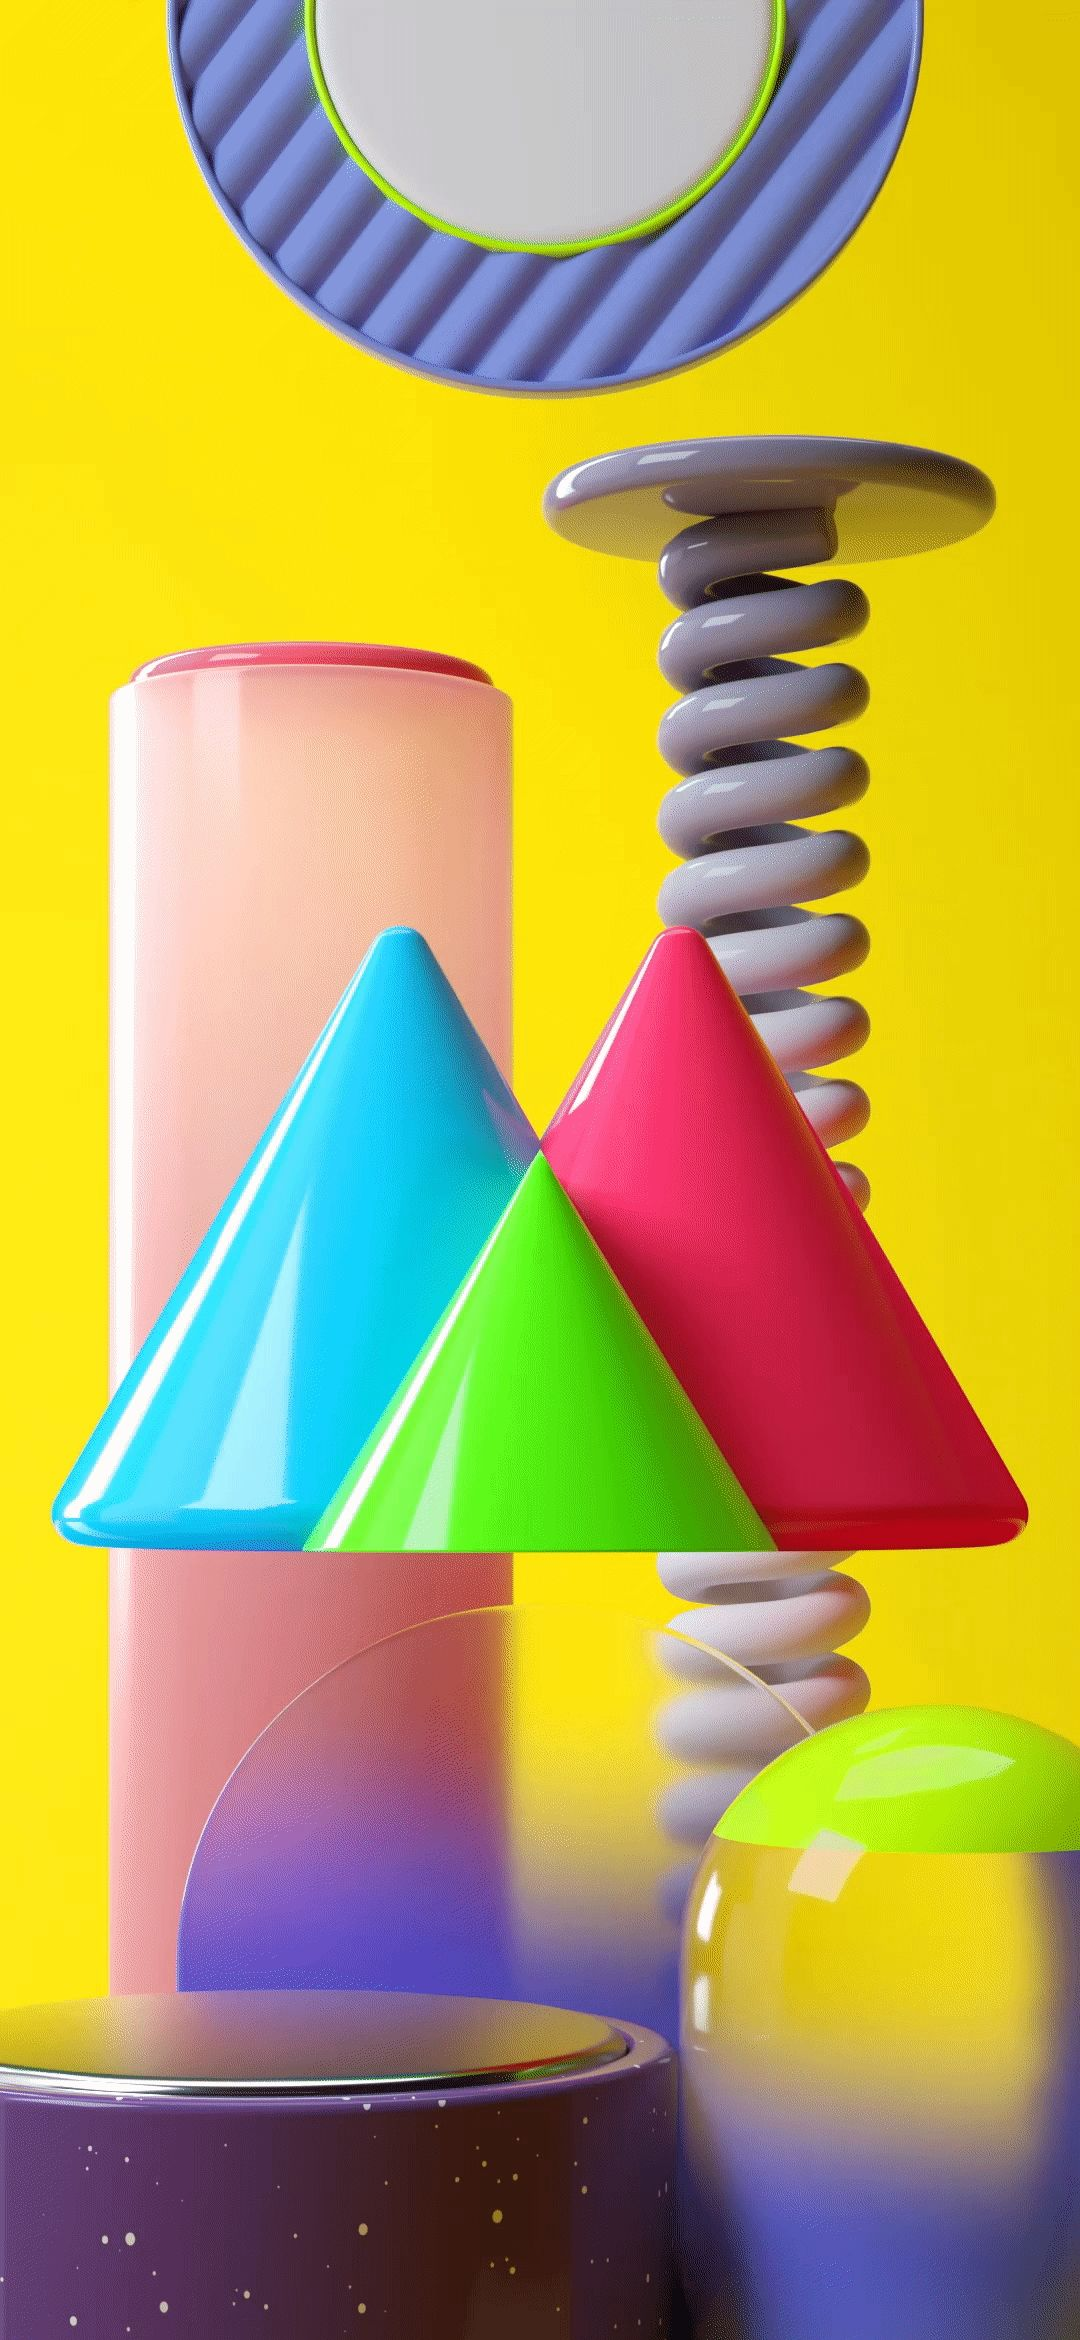 Download Samsung Galaxy M31 Wallpapers DroidViews in